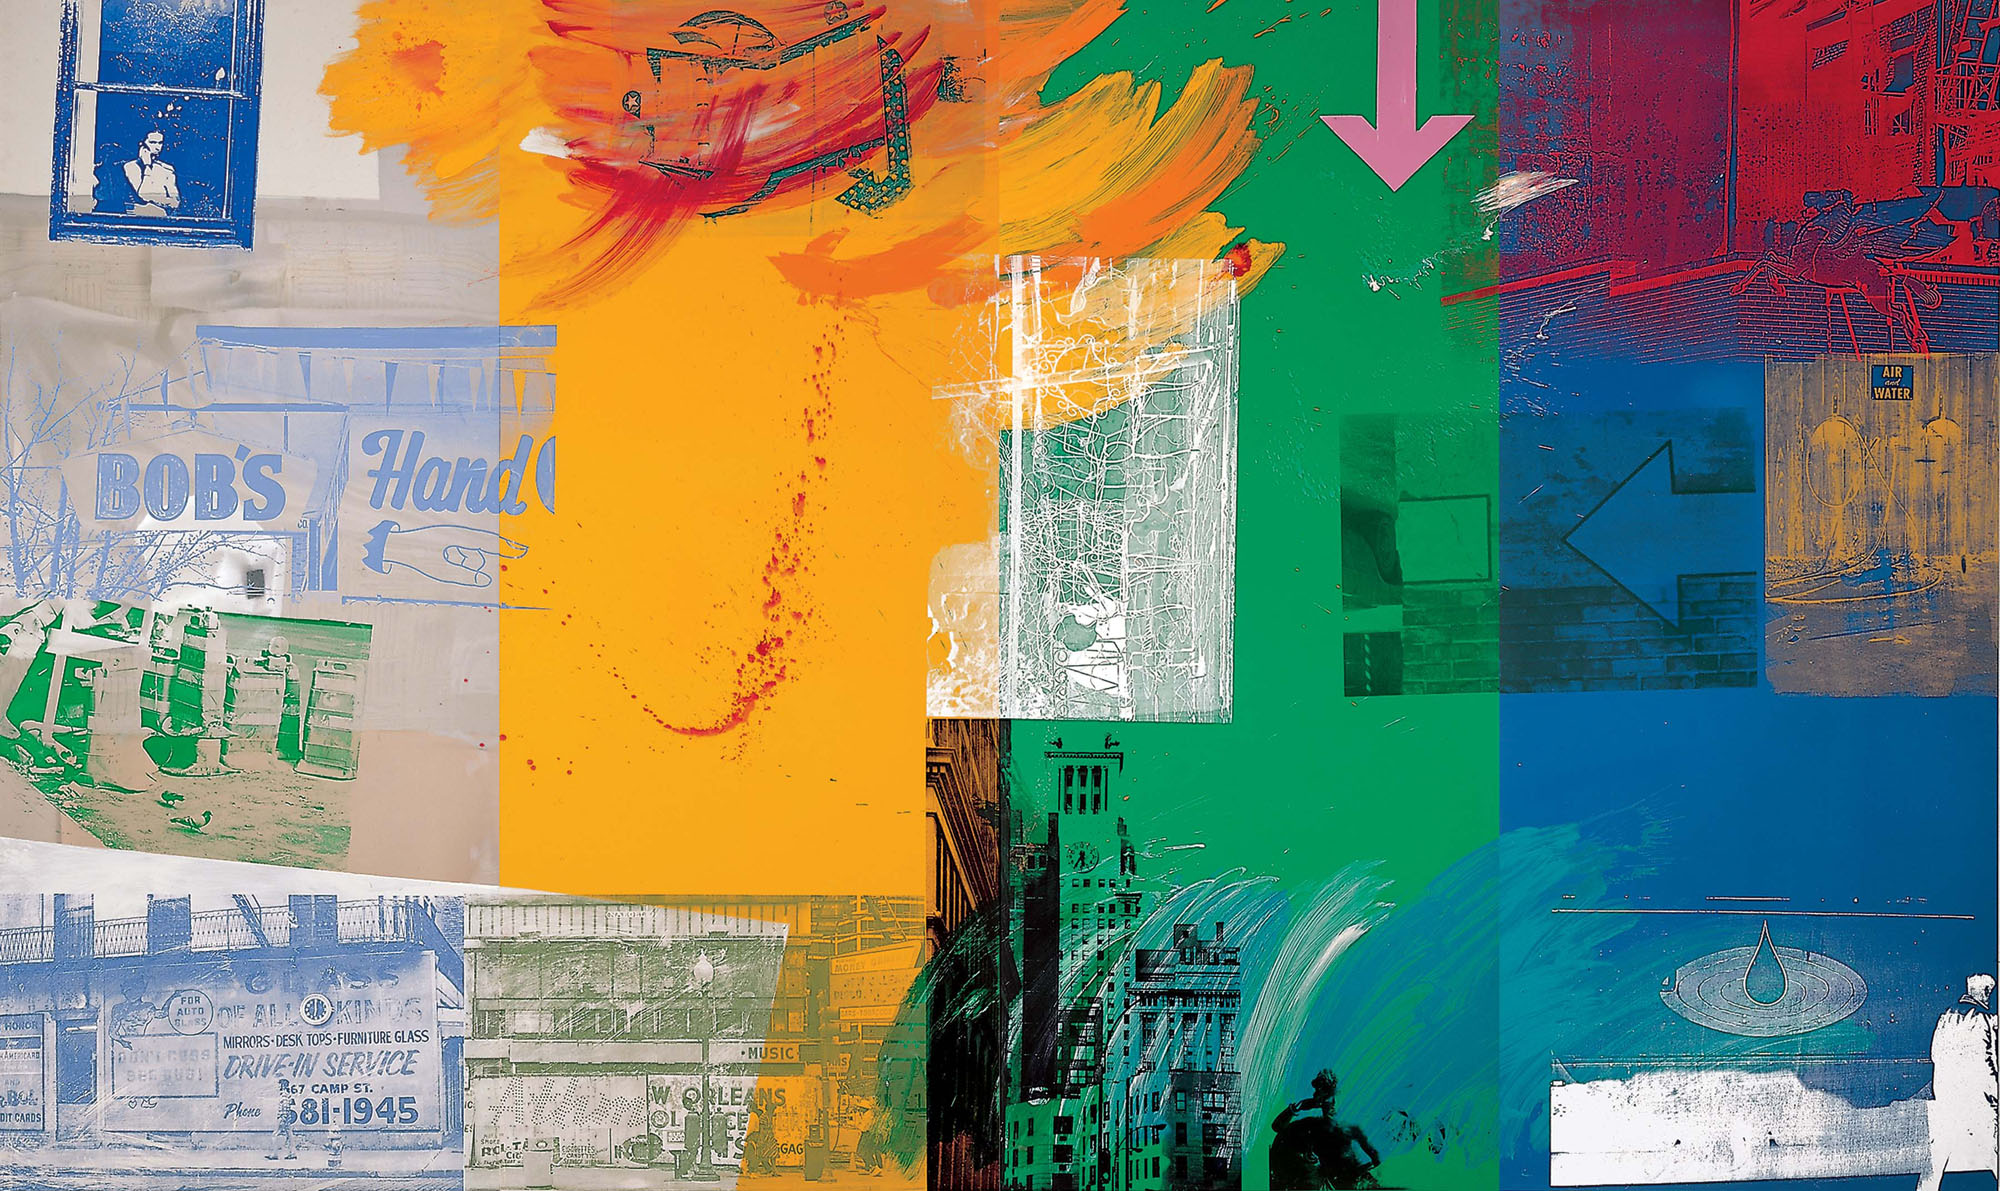 © Robert Rauschenberg Foundation. Catch (Urban Bourbon), 1993 Acrylic on mirrored and enameled aluminum (294.6 x 490.9 cm) Robert Rauschenberg Foundation